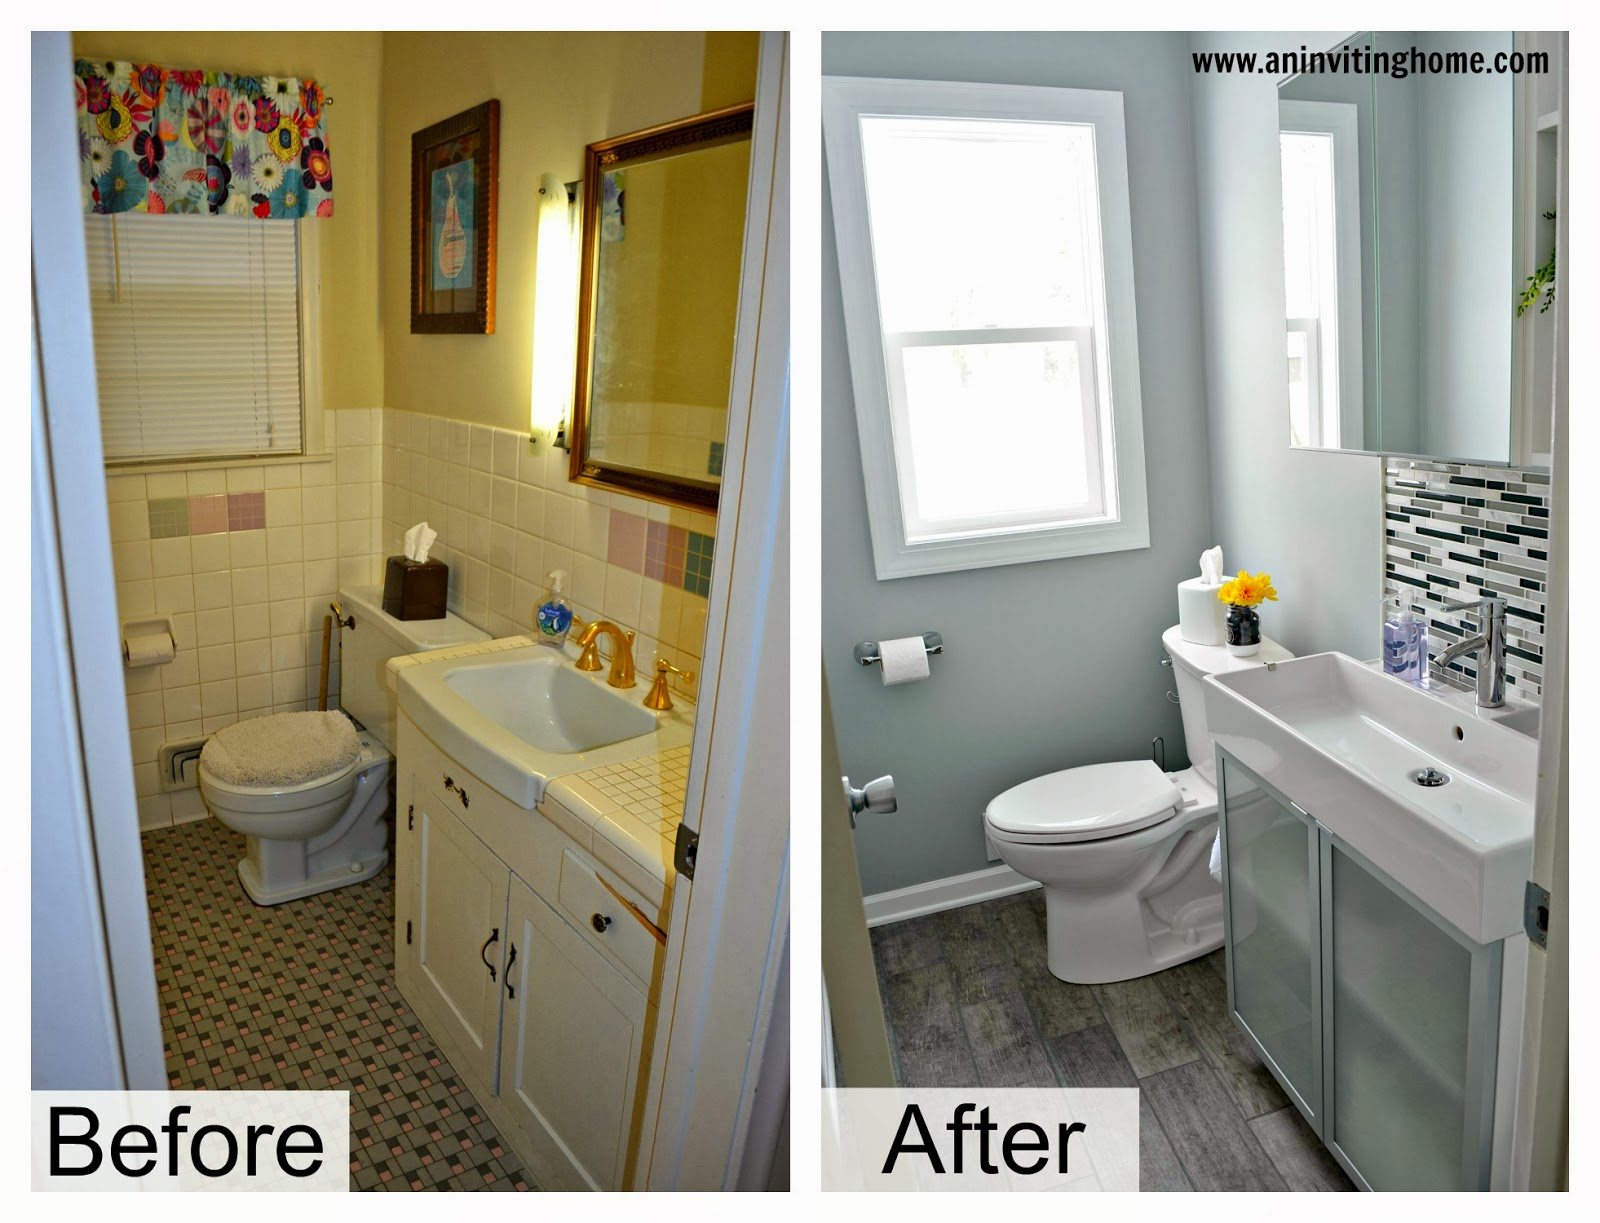 1950s Bathroom Remodel Before And After classy 20+ bathroom remodel before and after photos inspiration of